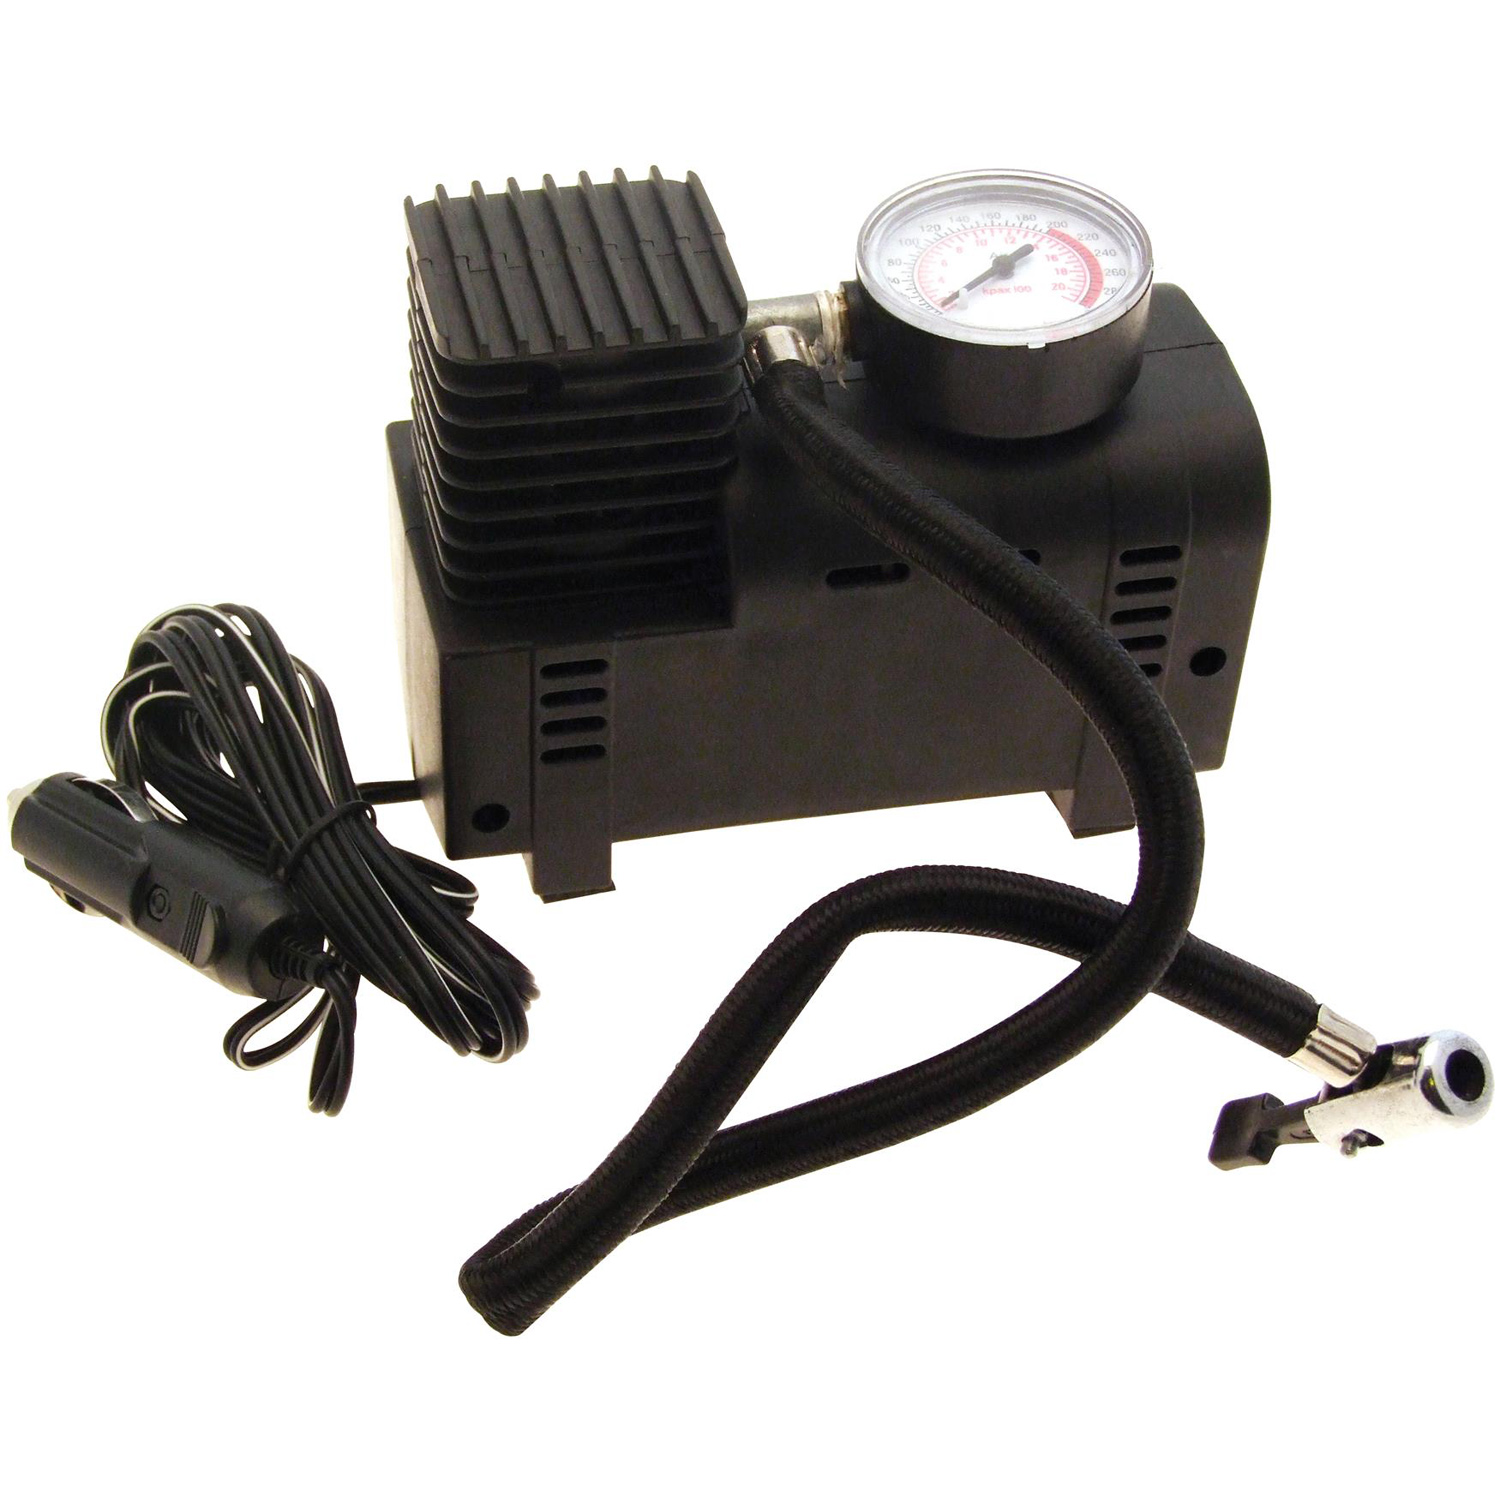 Image of Am-tech 250psi Mini Air Compressor